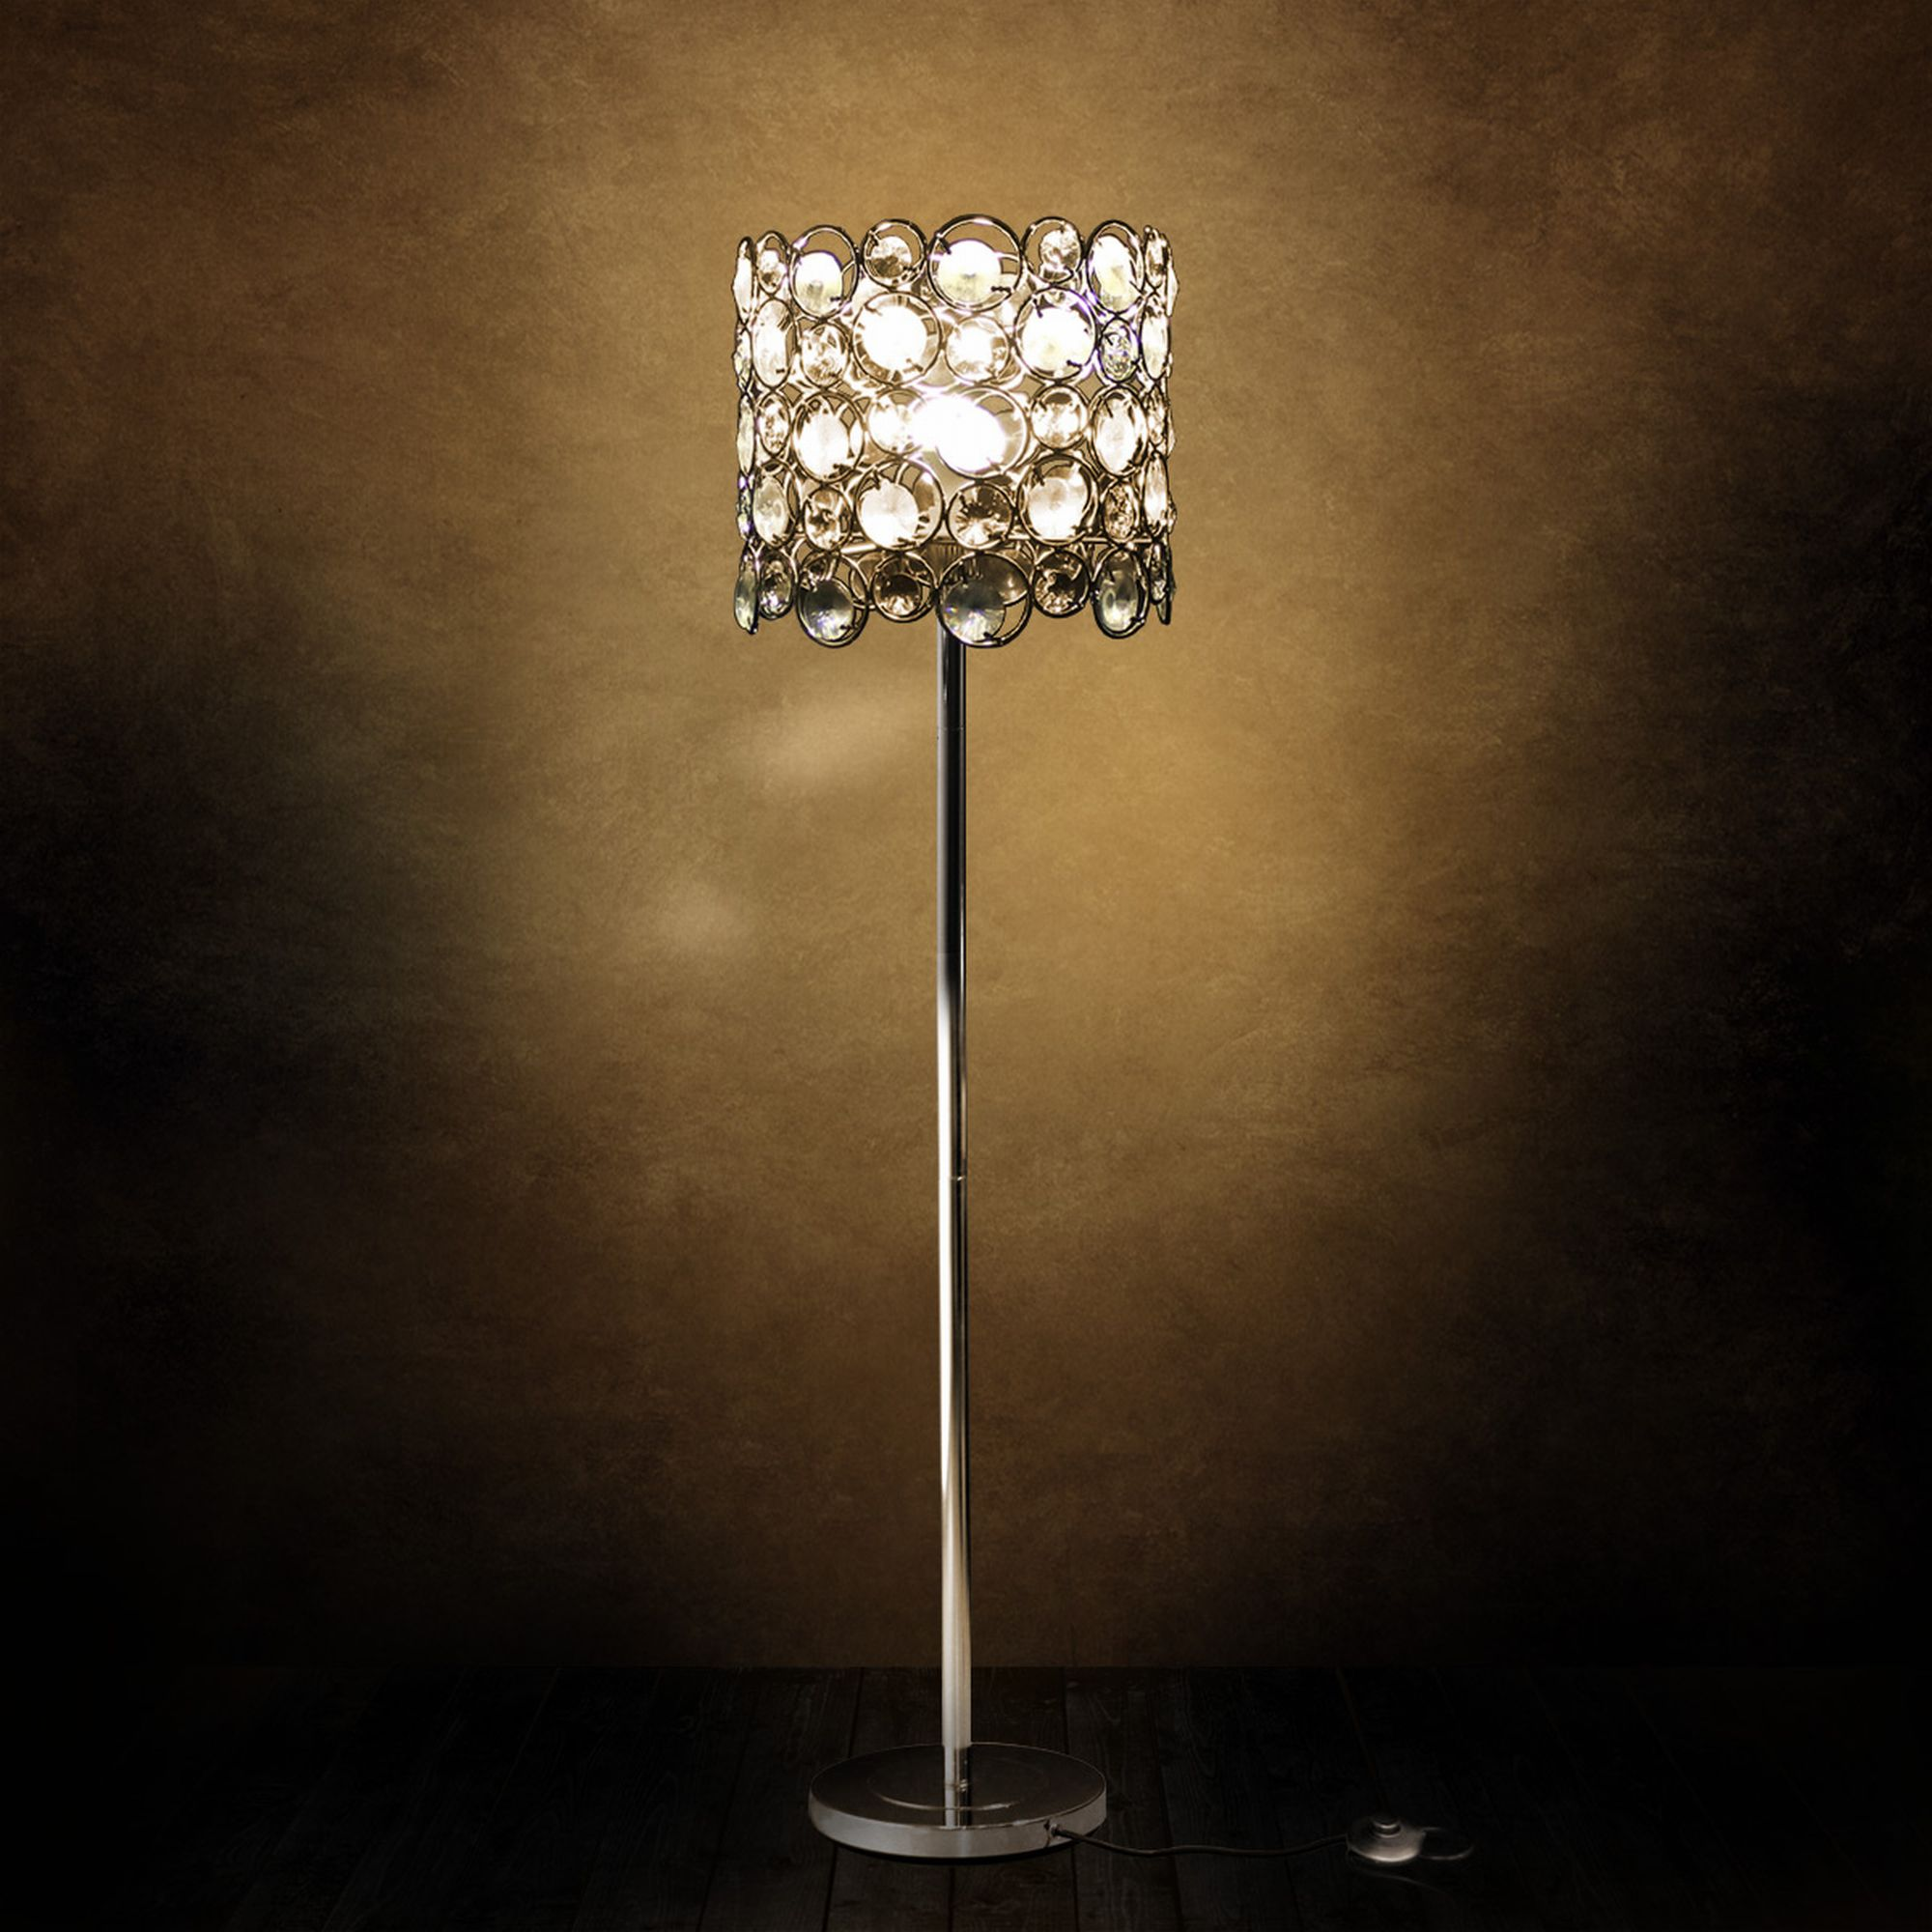 Crystal floor lamp standard lamp living room lamp light for Ebay living room lights